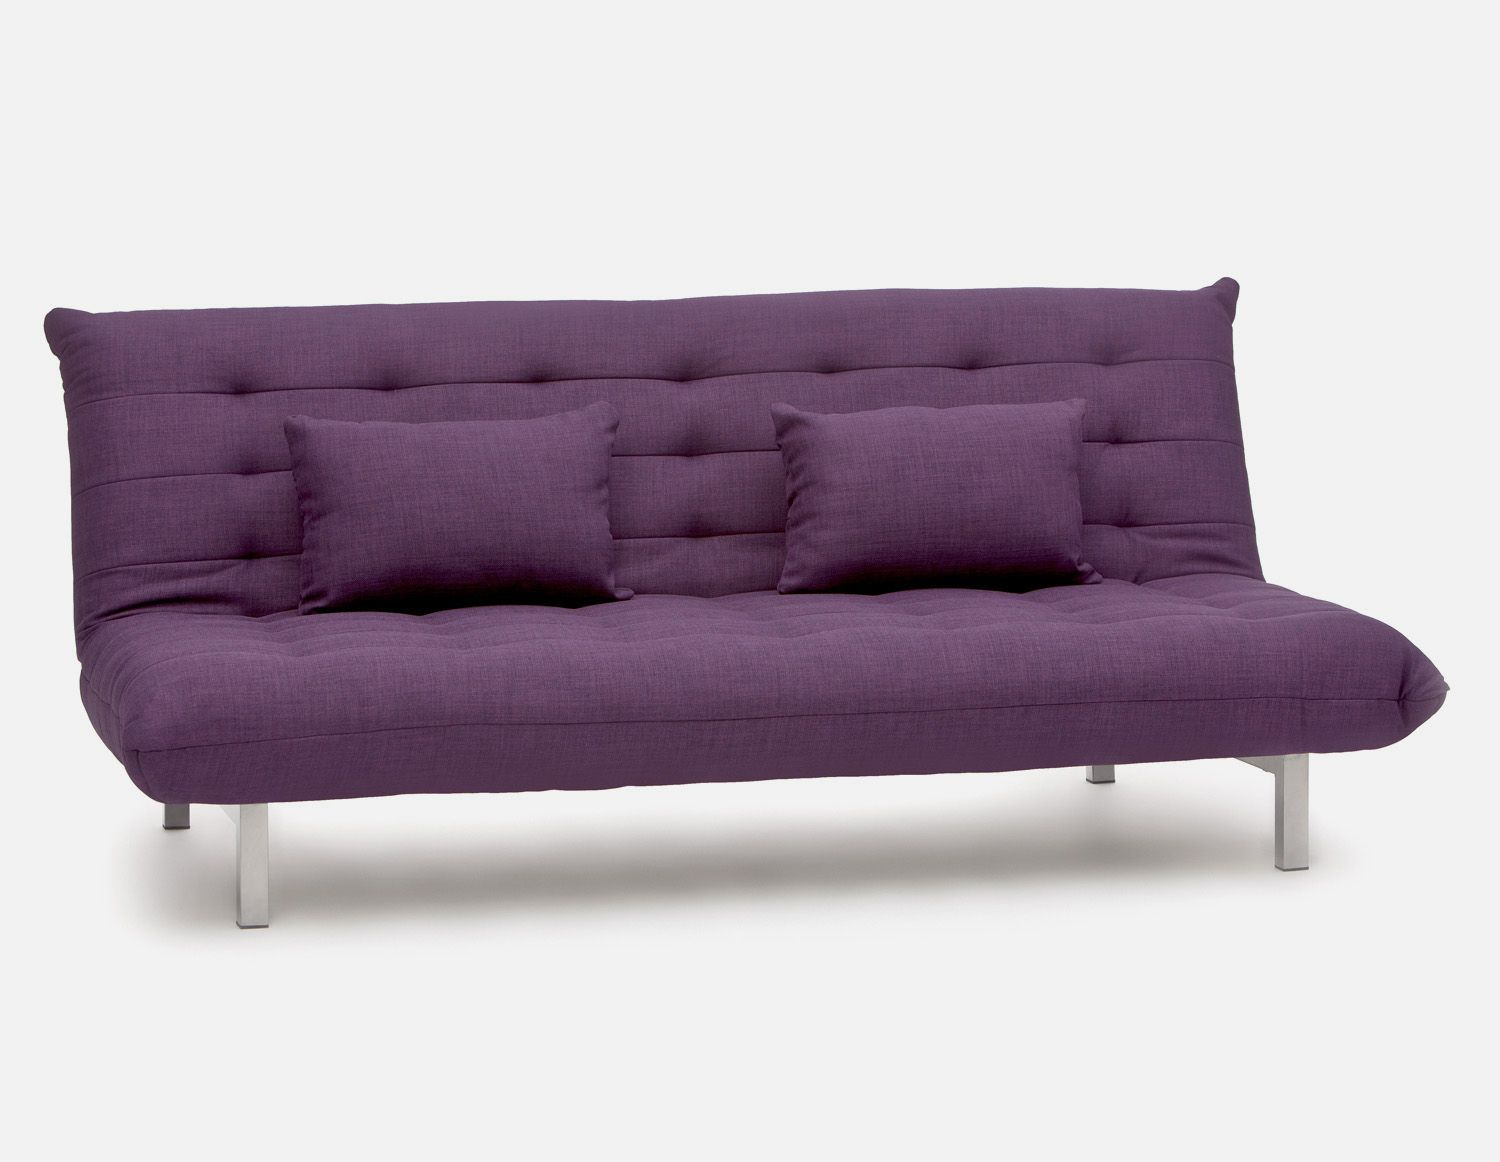 Purple Sofa Bed Structube Flow Sofa Bed Tufted Sofa Sofa Bed Purple